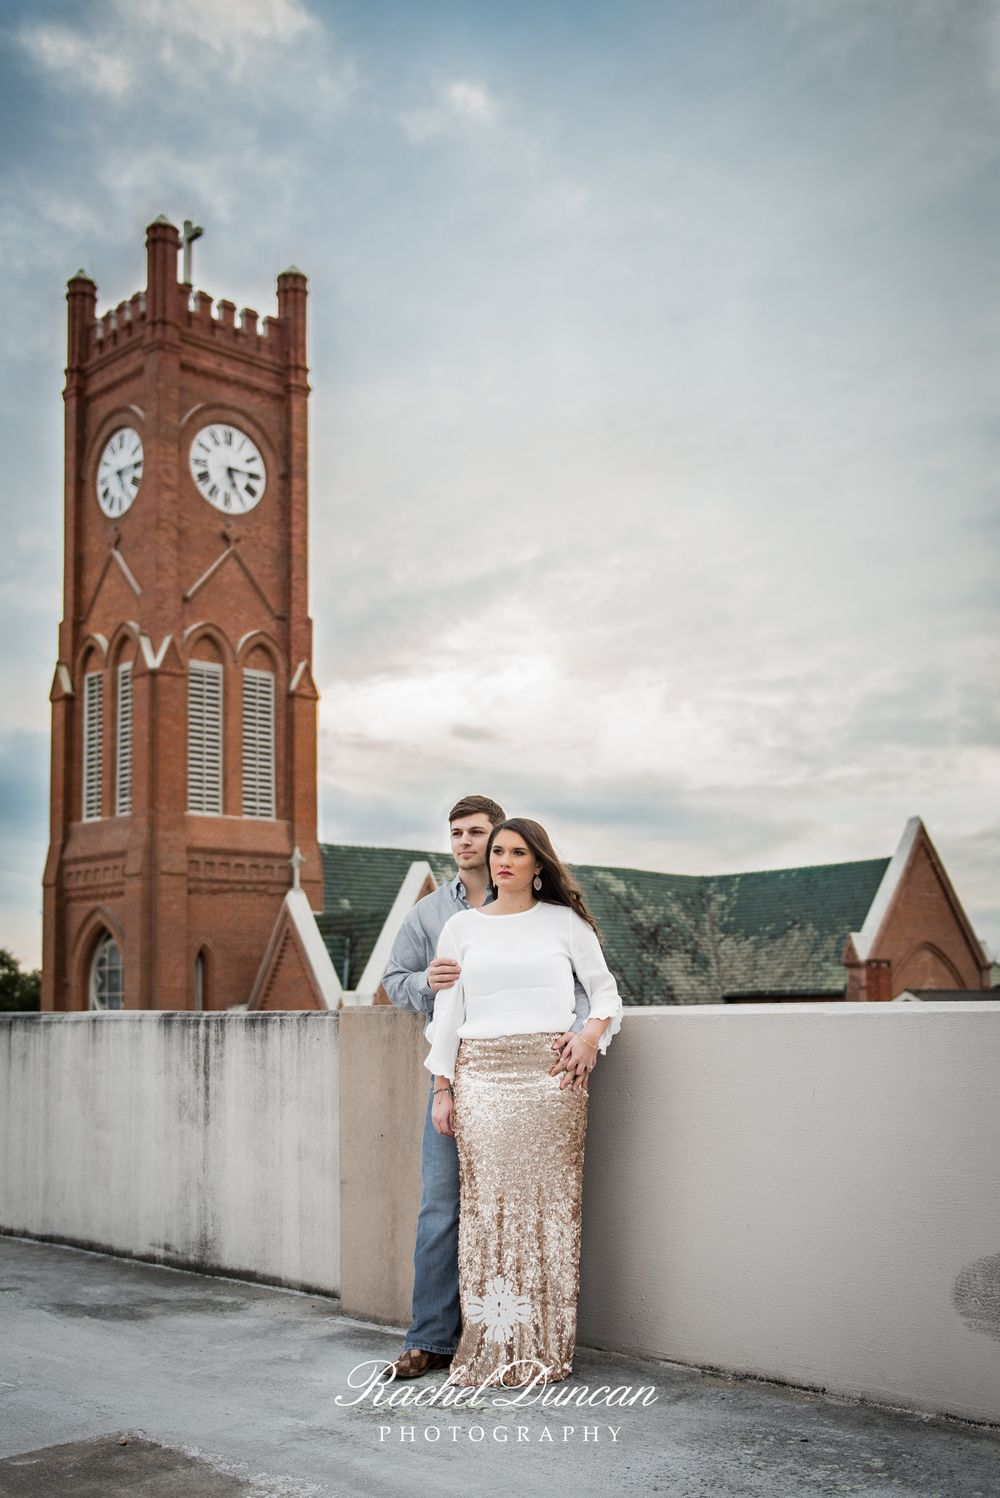 Engagement Session, Downtown Pictures, engagements, bride, groom, cathedral, wedding photography